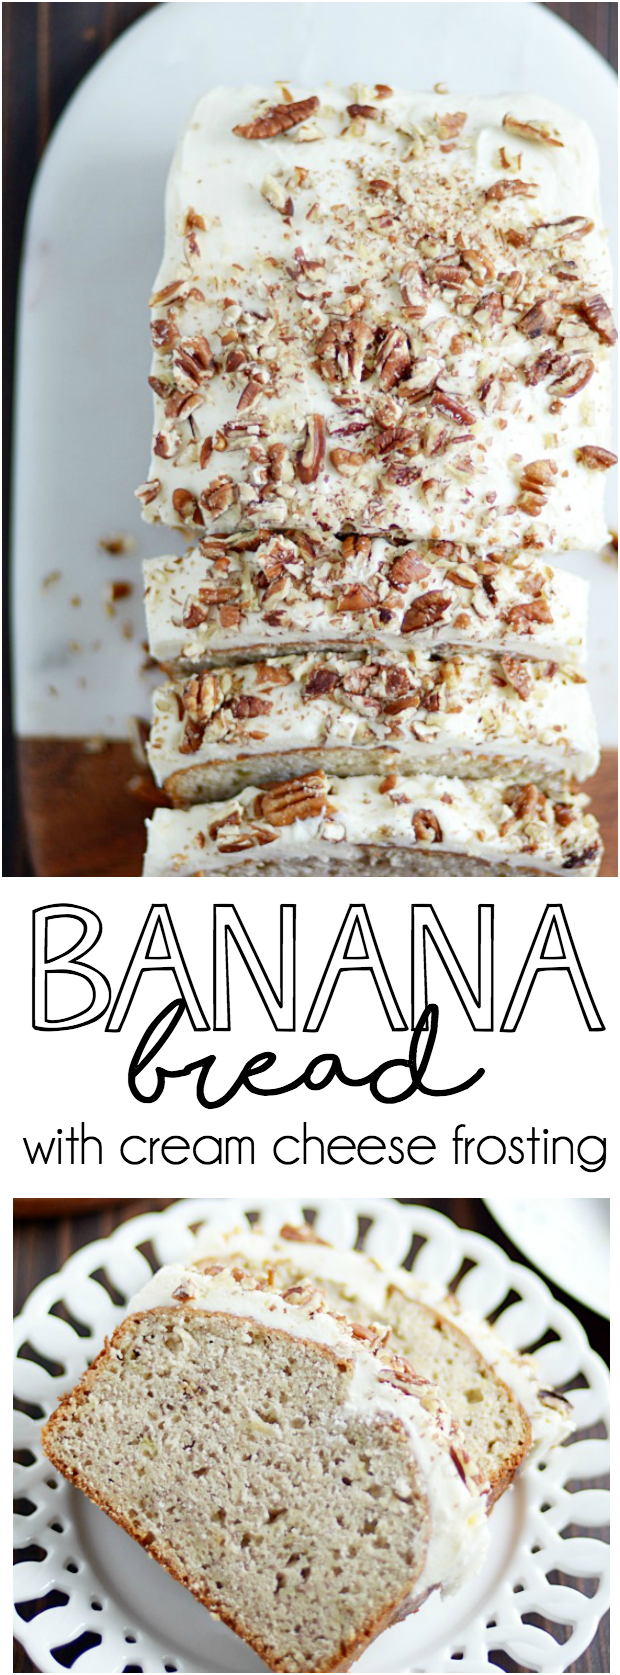 My favorite classic banana bread recipe smothered in cream cheese frosting and chopped pecans.